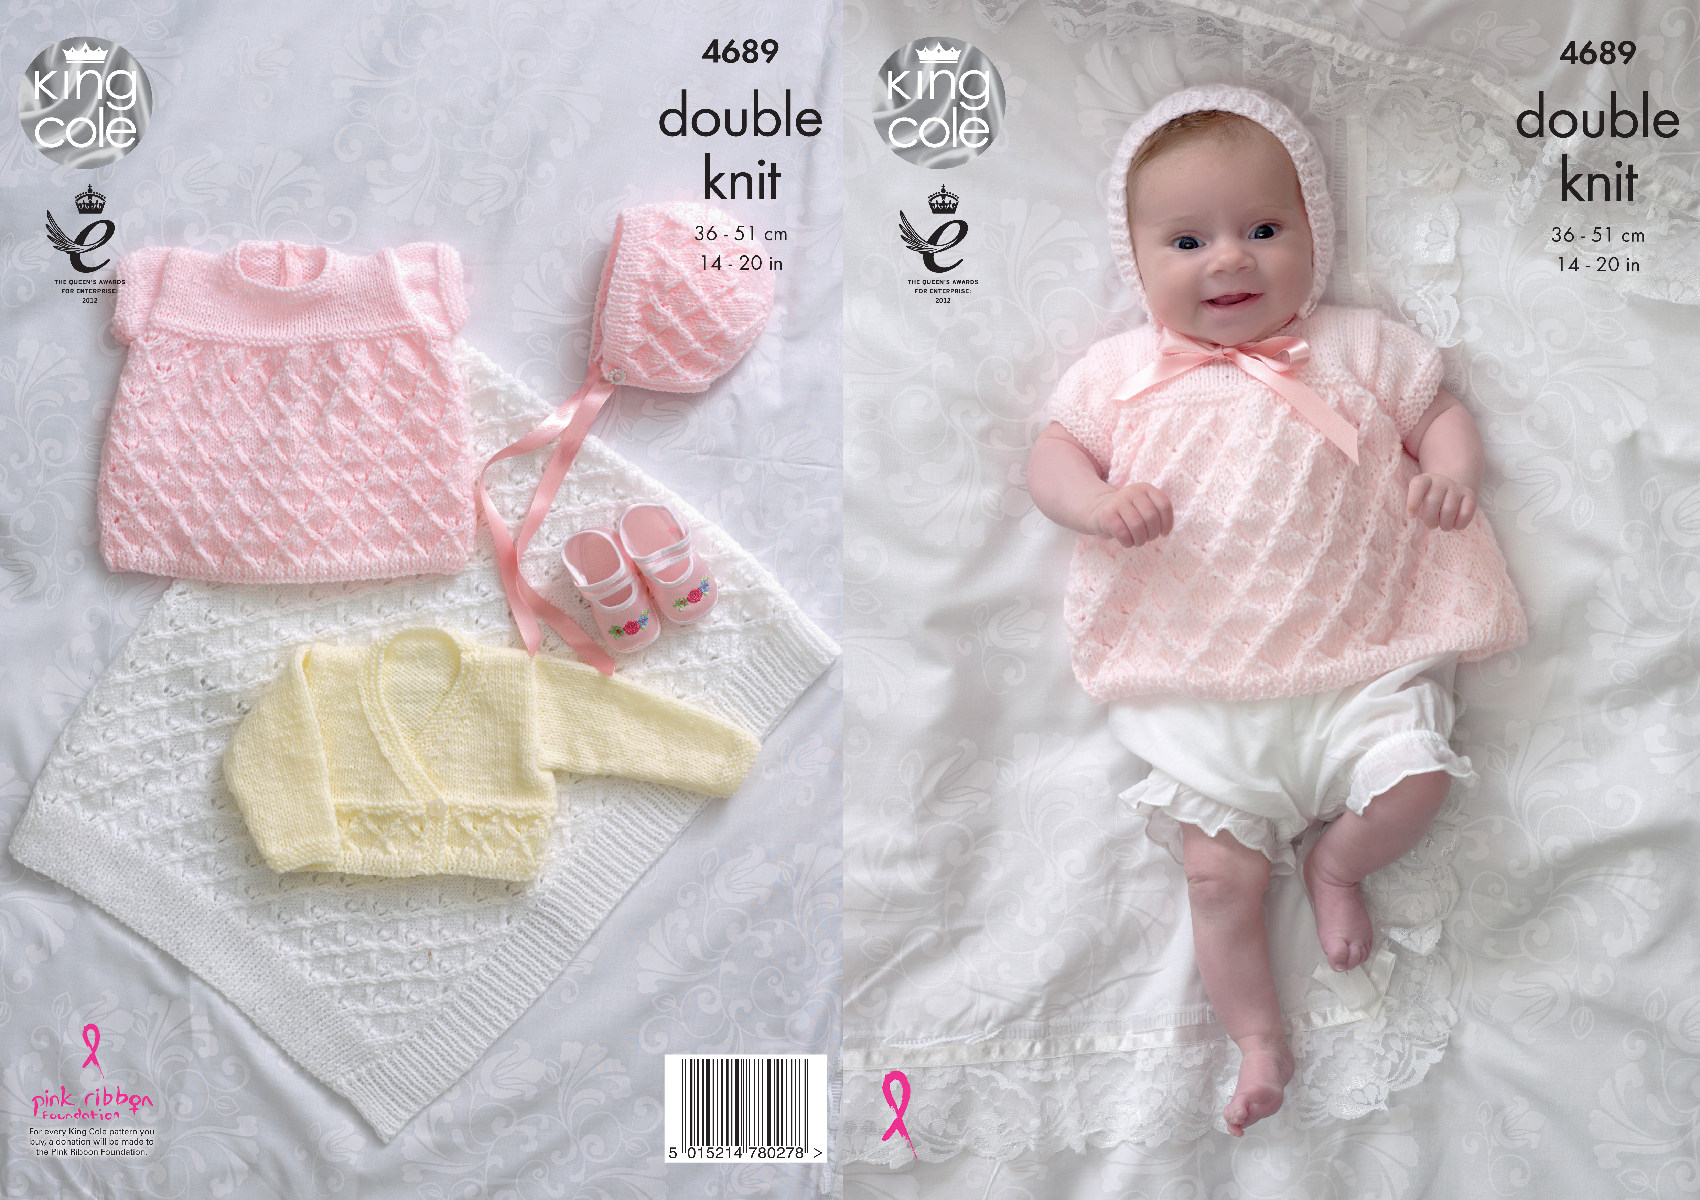 Baby Girl Blanket Knitting Patterns Details About Knitting Pattern Ba Cardigan Angel Top Bonnet Blanket King Cole Dk 4689